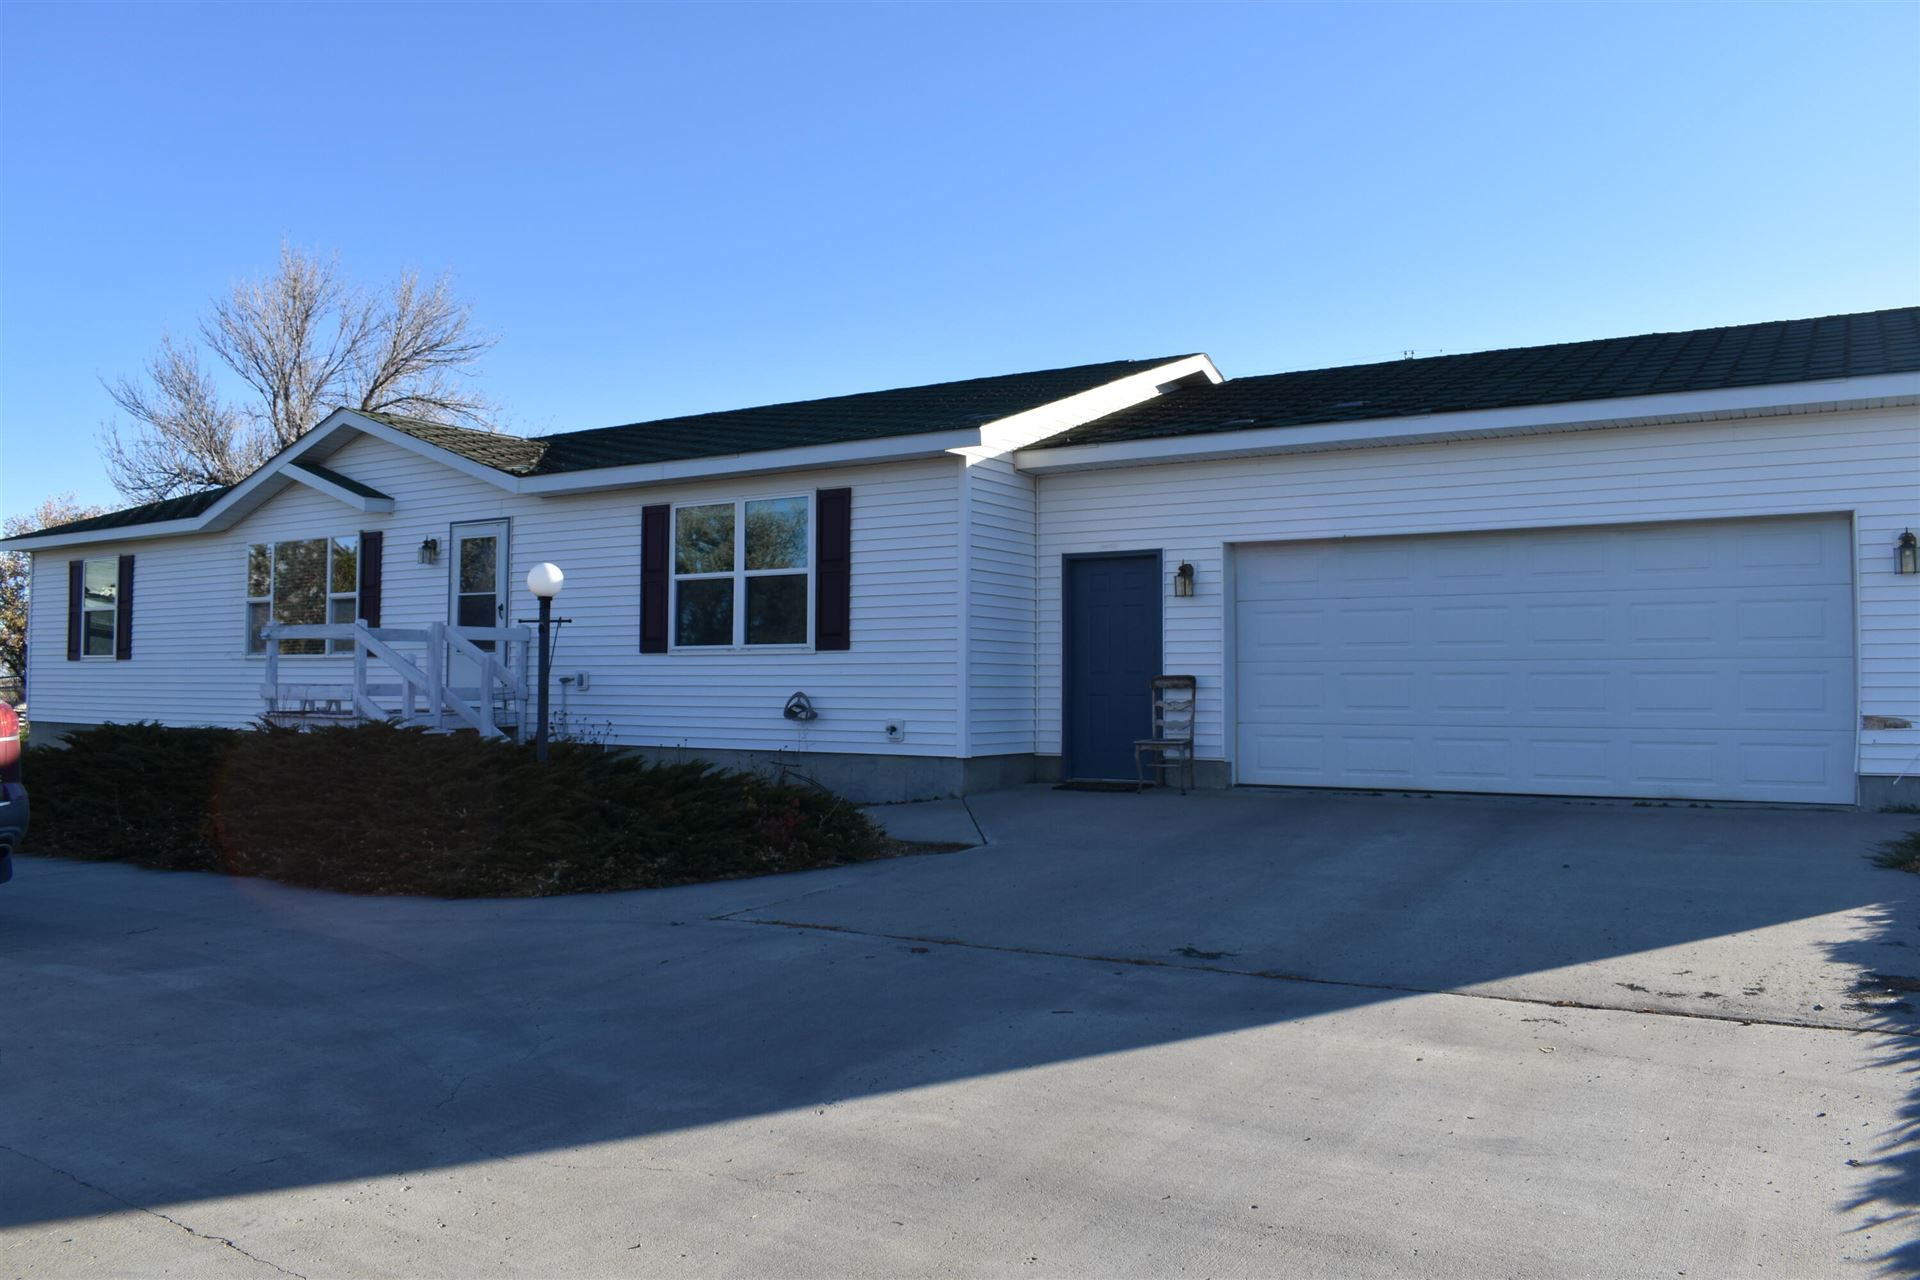 Photo of 524 6th Avenue South, Shelby, MT 59474 (MLS # 22116457)